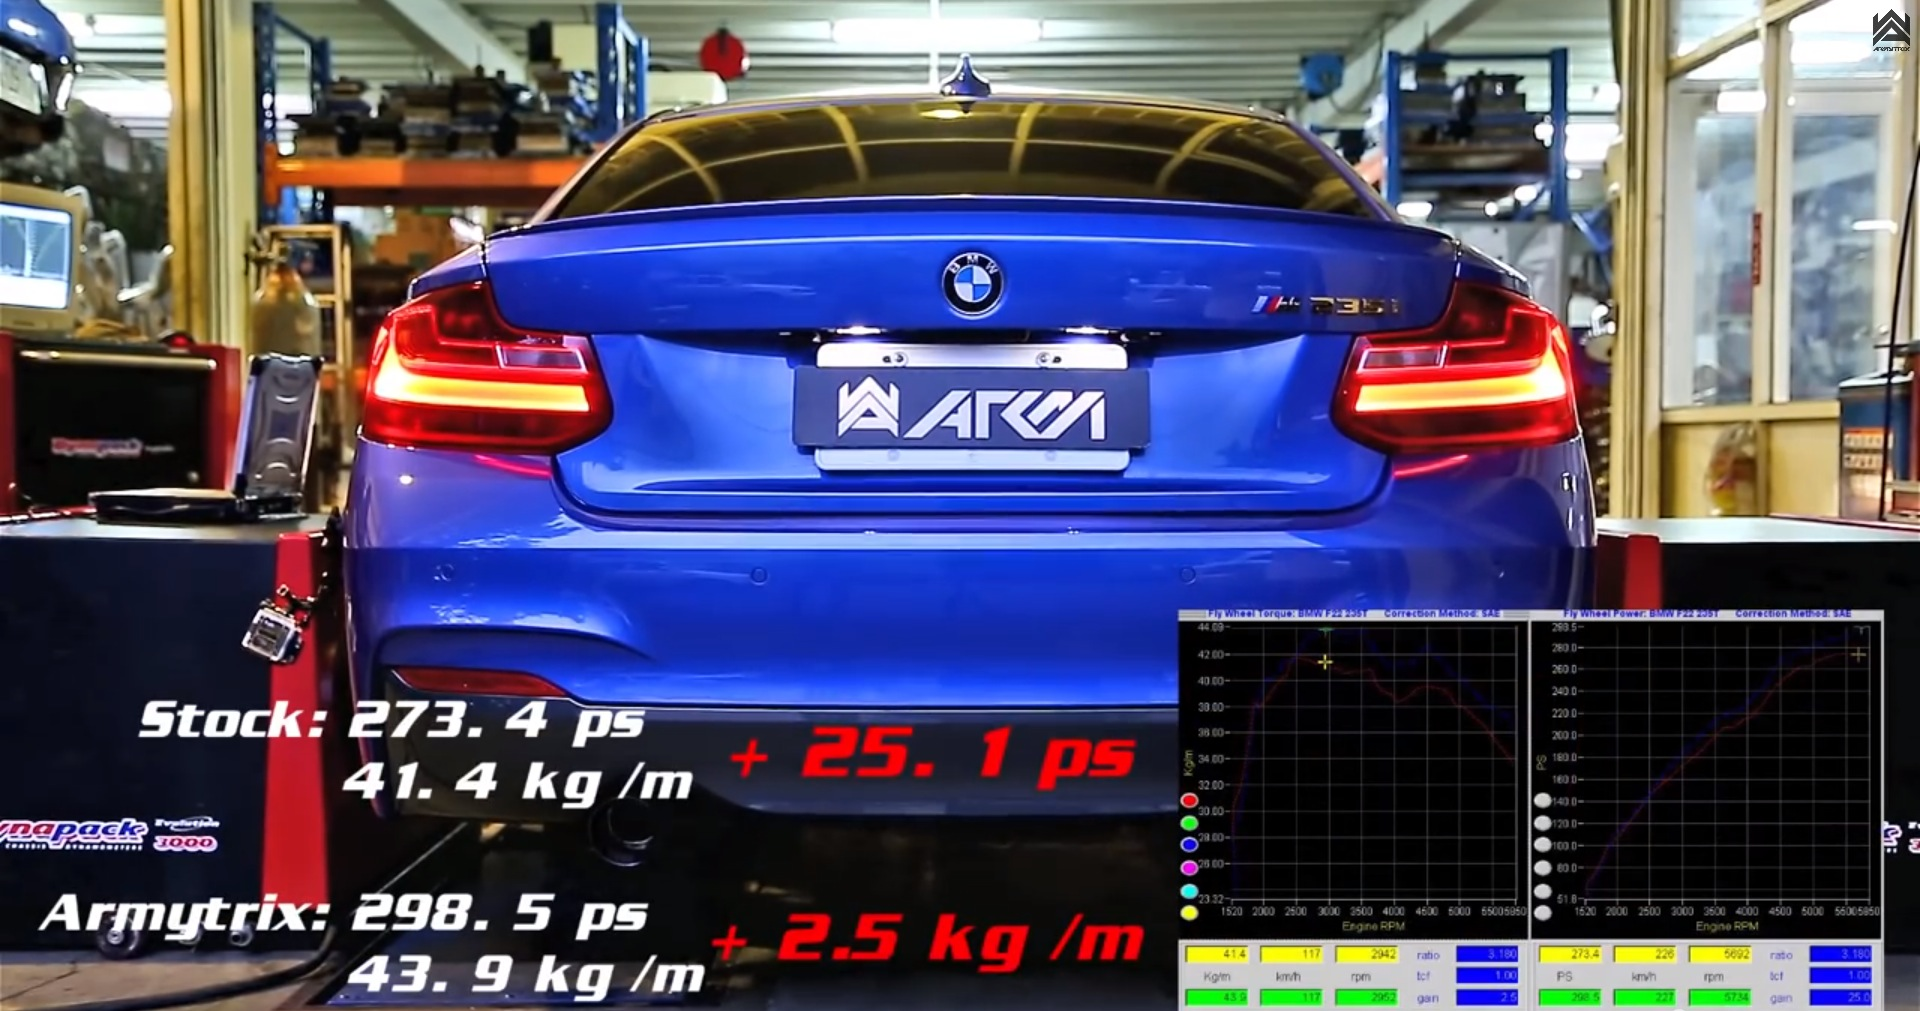 Get 25 Extra HP for your M235i with an Armytrix Exhaust